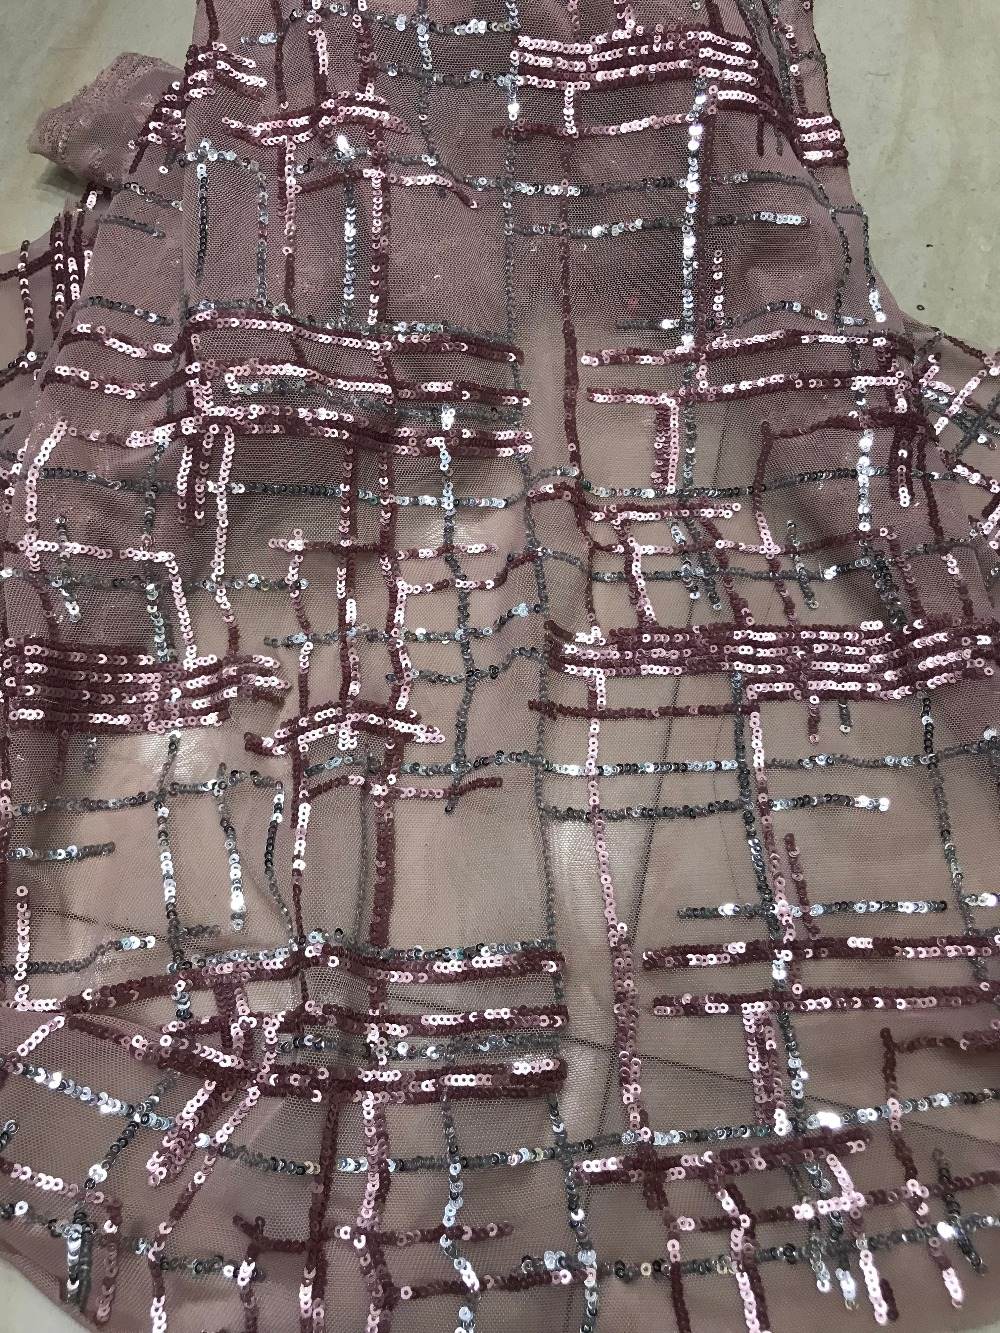 African sequins Lace Fabric ZH 7227 Fashion Beautiful sequins net lace Embroidery French Tulle Lace High